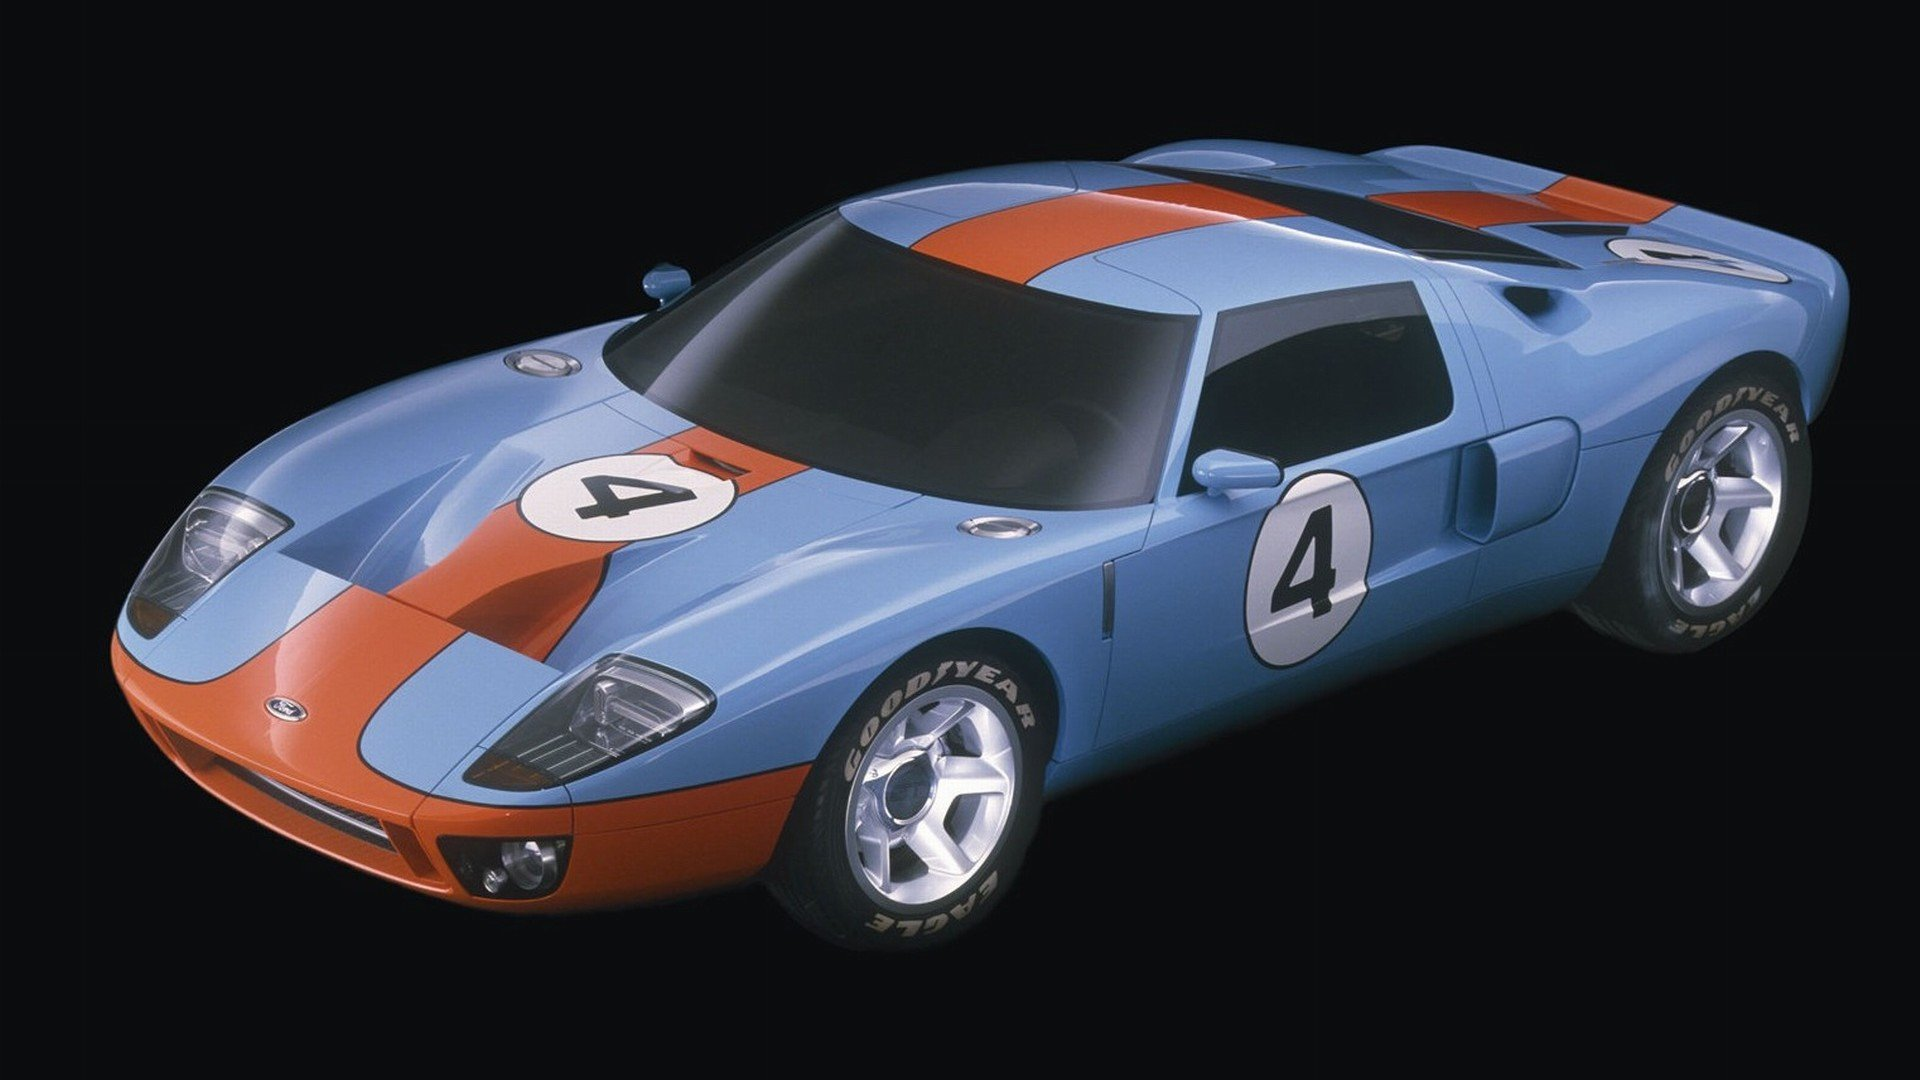 Ford GT40 Concept 2002 24 1920x1080 WallpapersFord GT 1920x1080 1920x1080